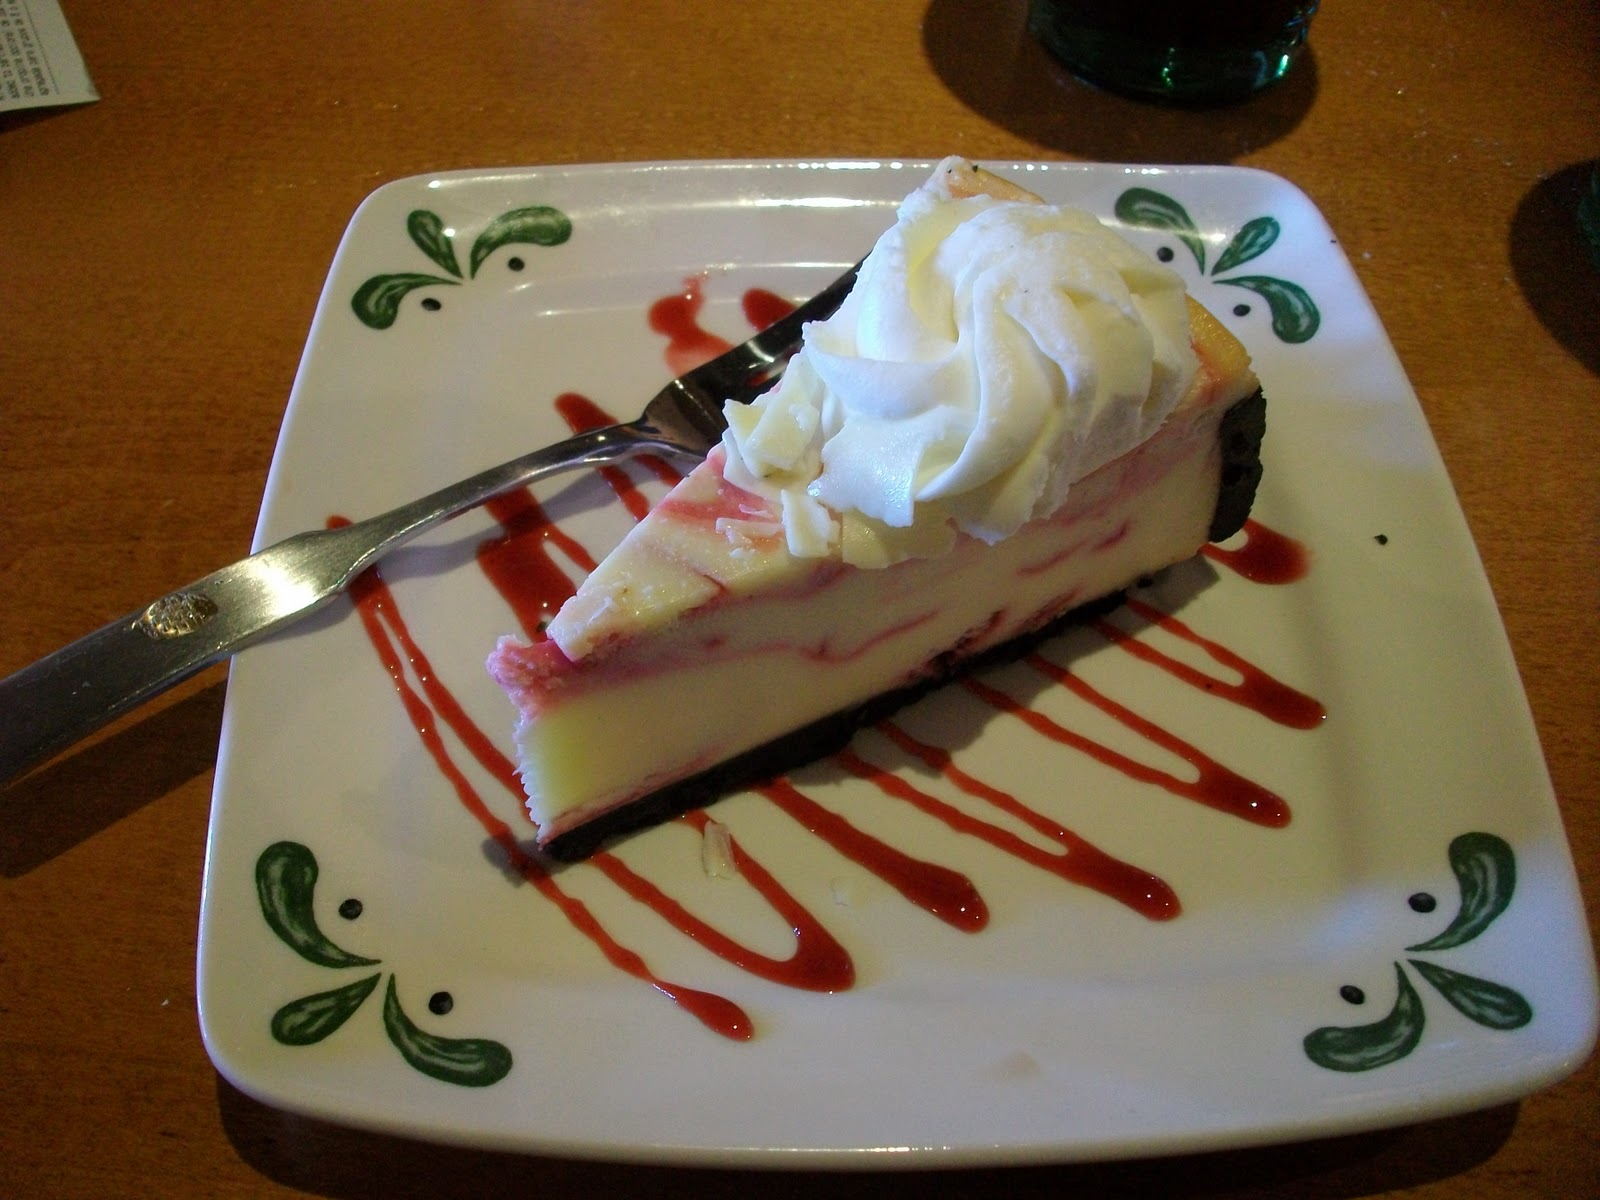 White Chocolate Raspberry Cheesecake Olive Garden White chocolate    Olive Garden White Chocolate Raspberry Cheesecake